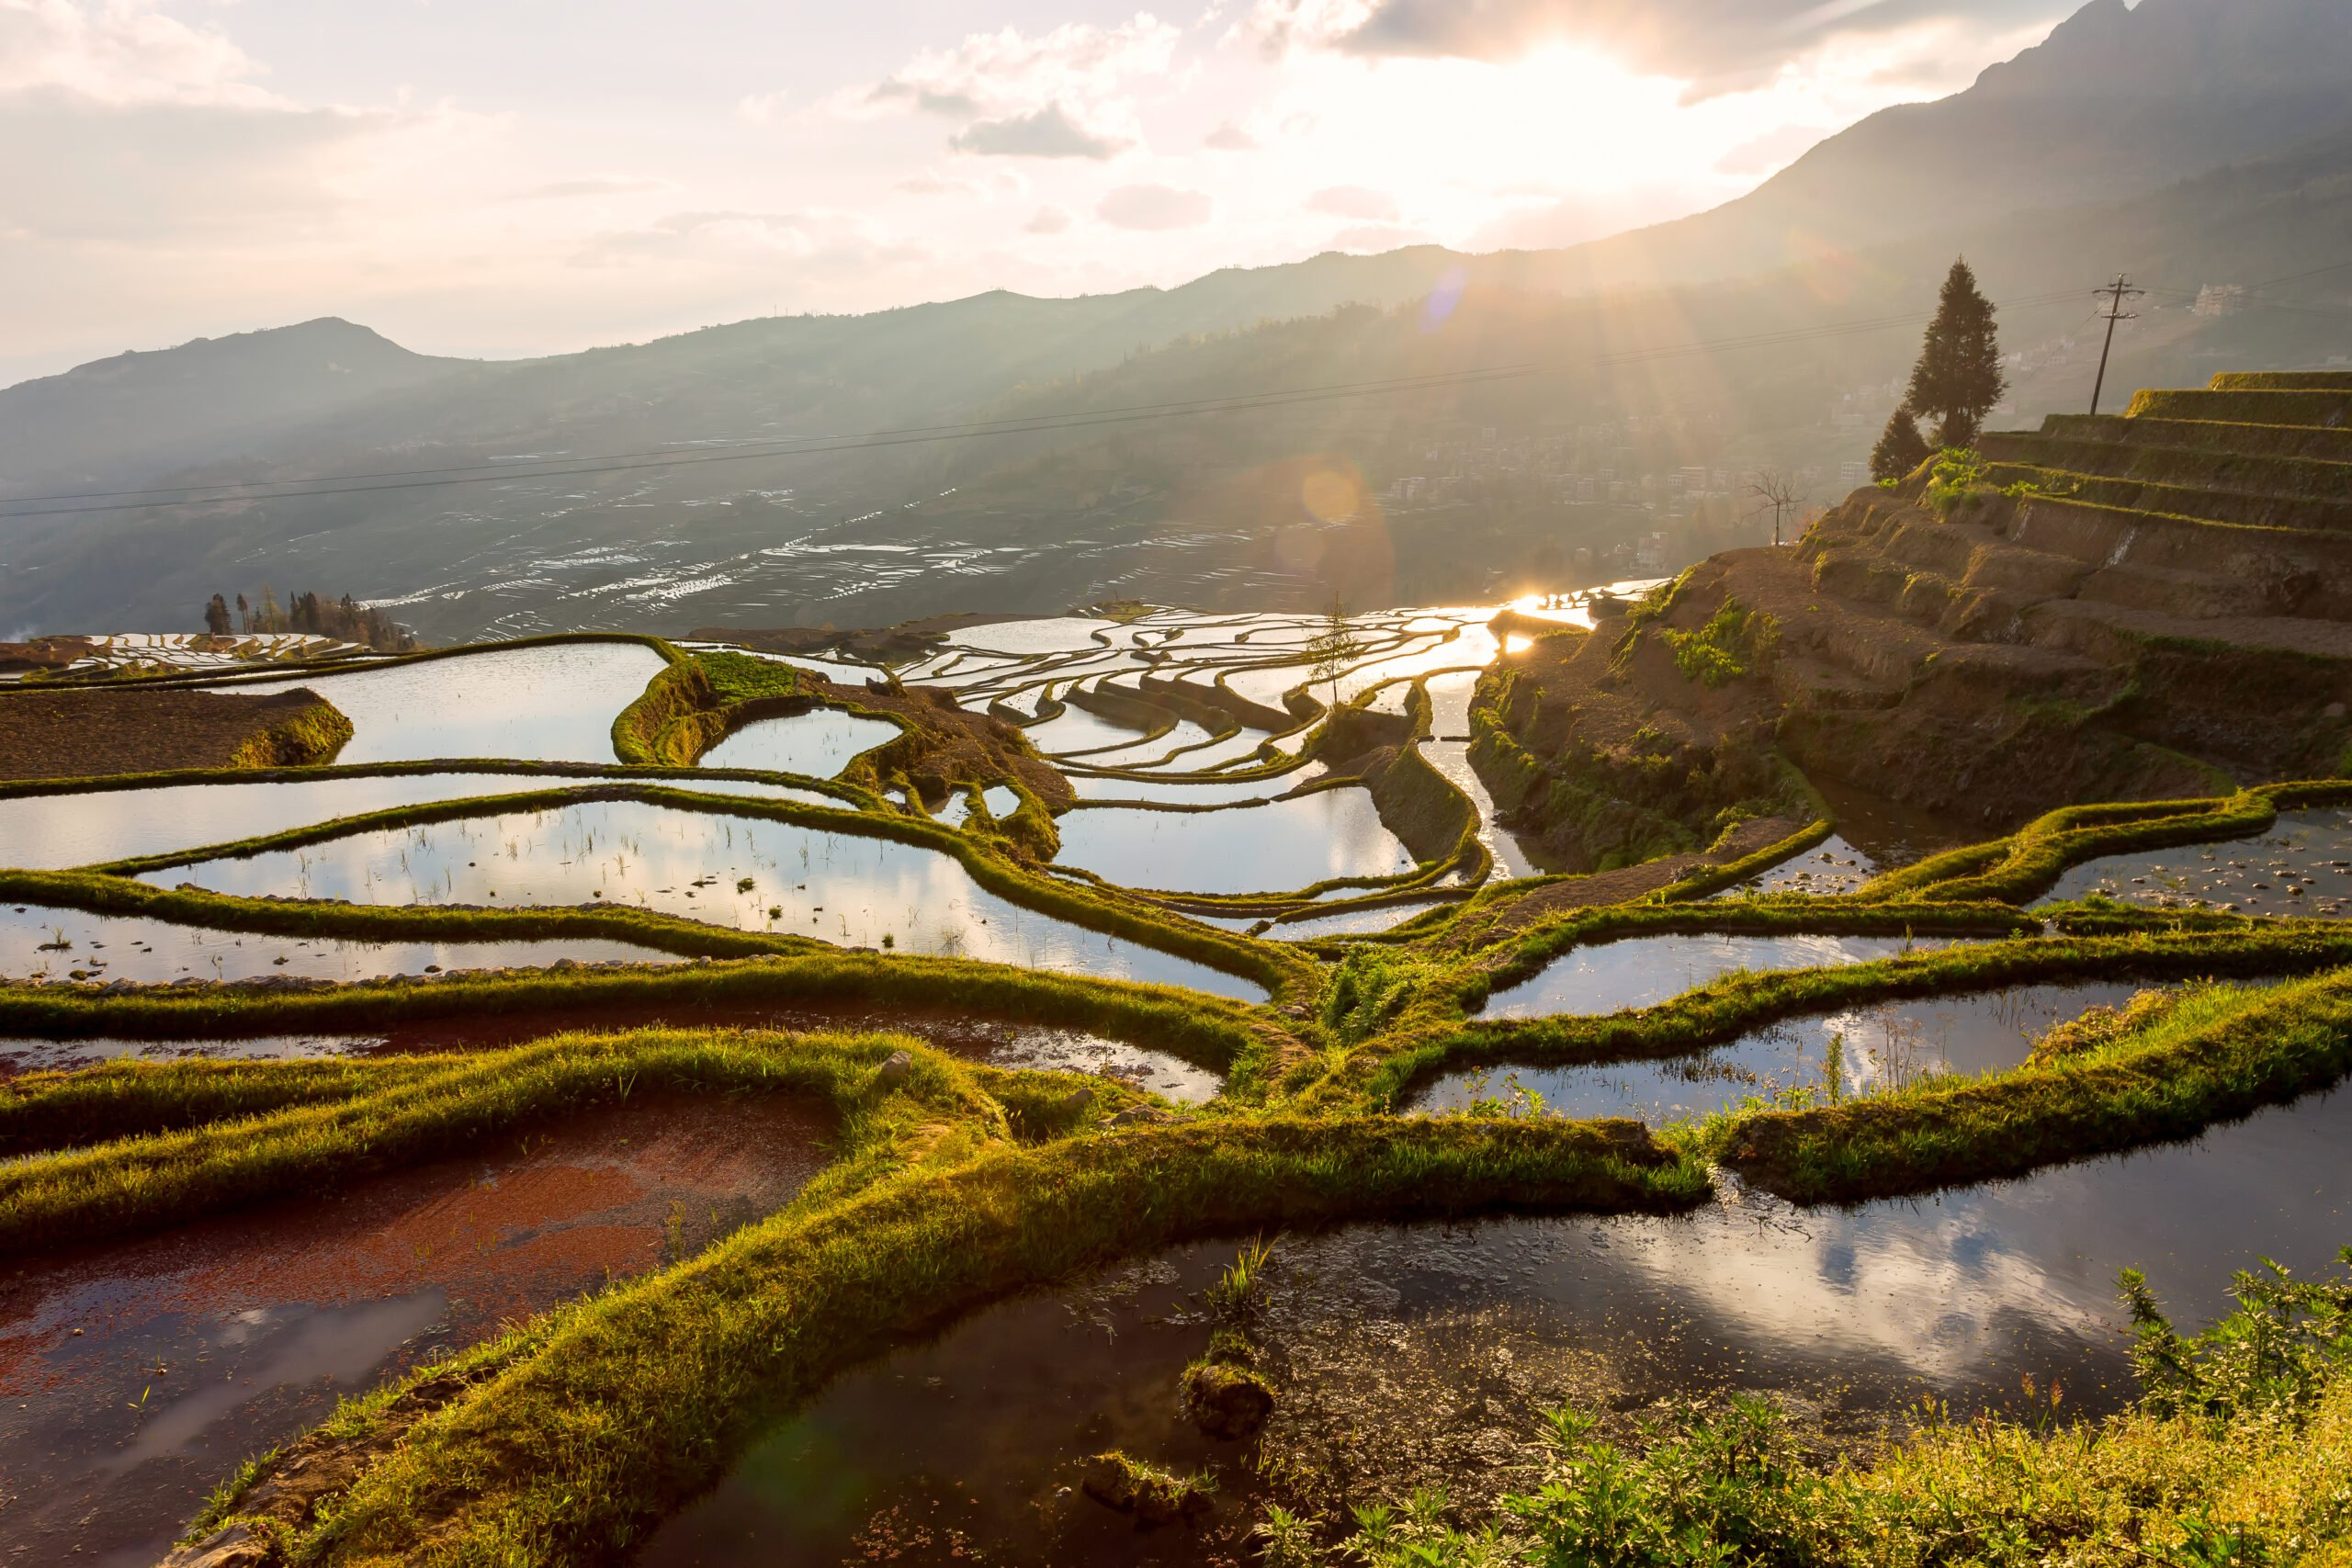 Marvel The Amazing Hani Rice Terraces In Our Jianshui And Yuanyang Hani Rice Terraces 3 Day Package